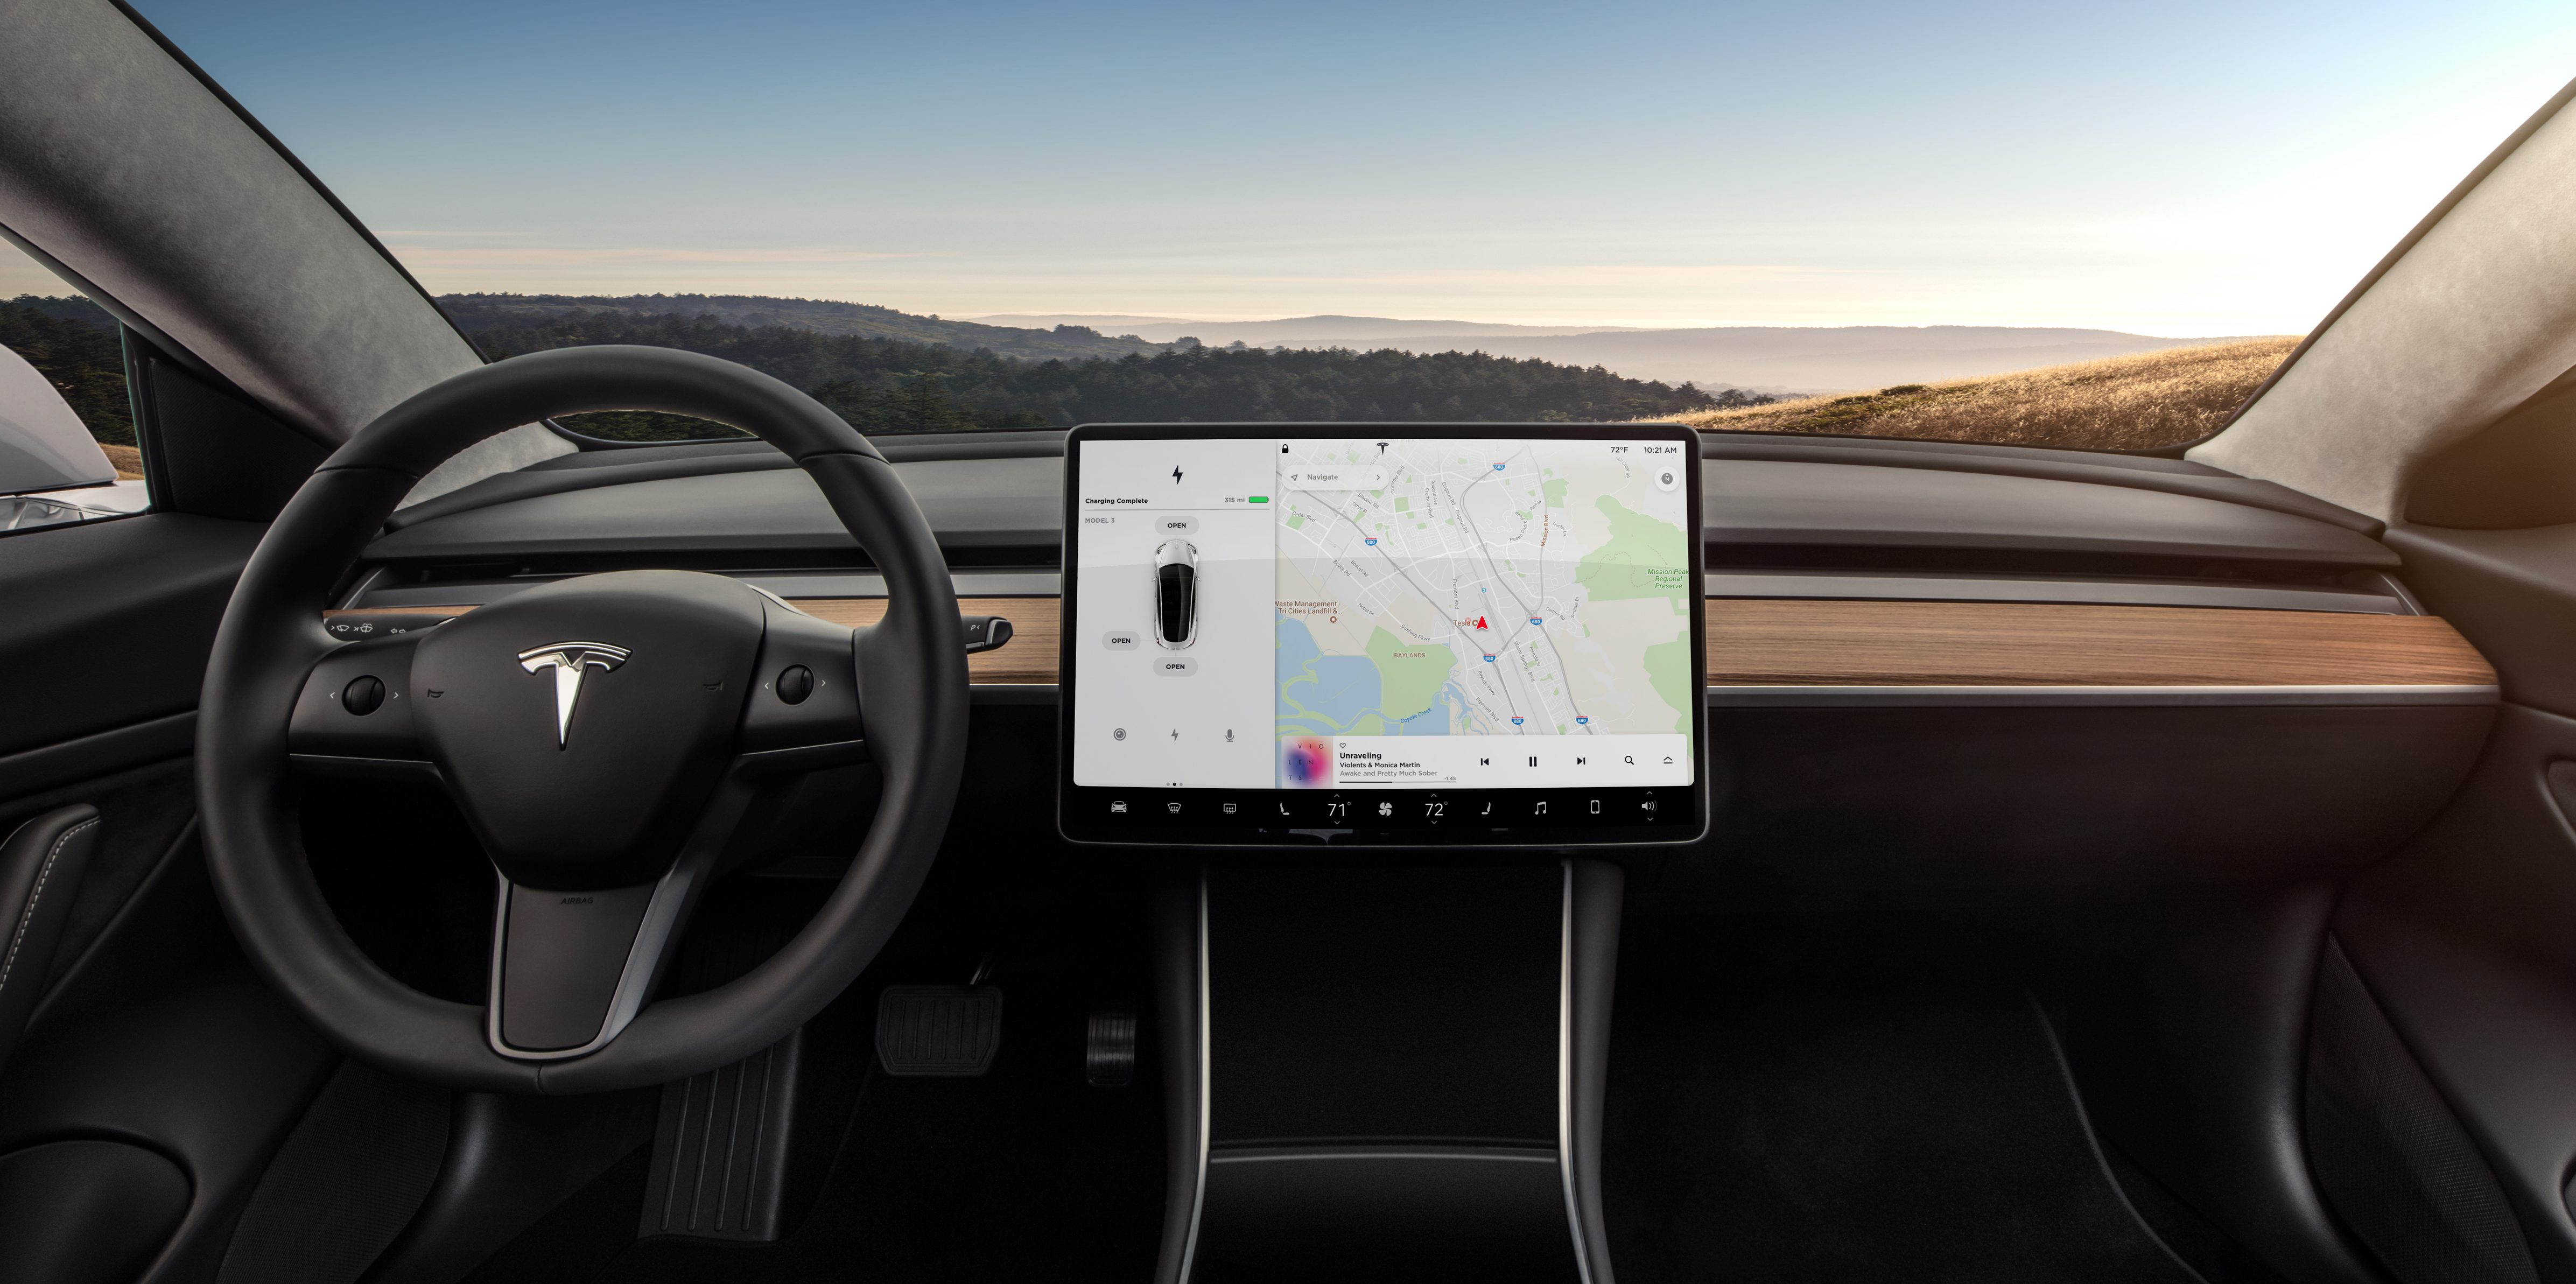 Will the tesla model 3 have autopilot